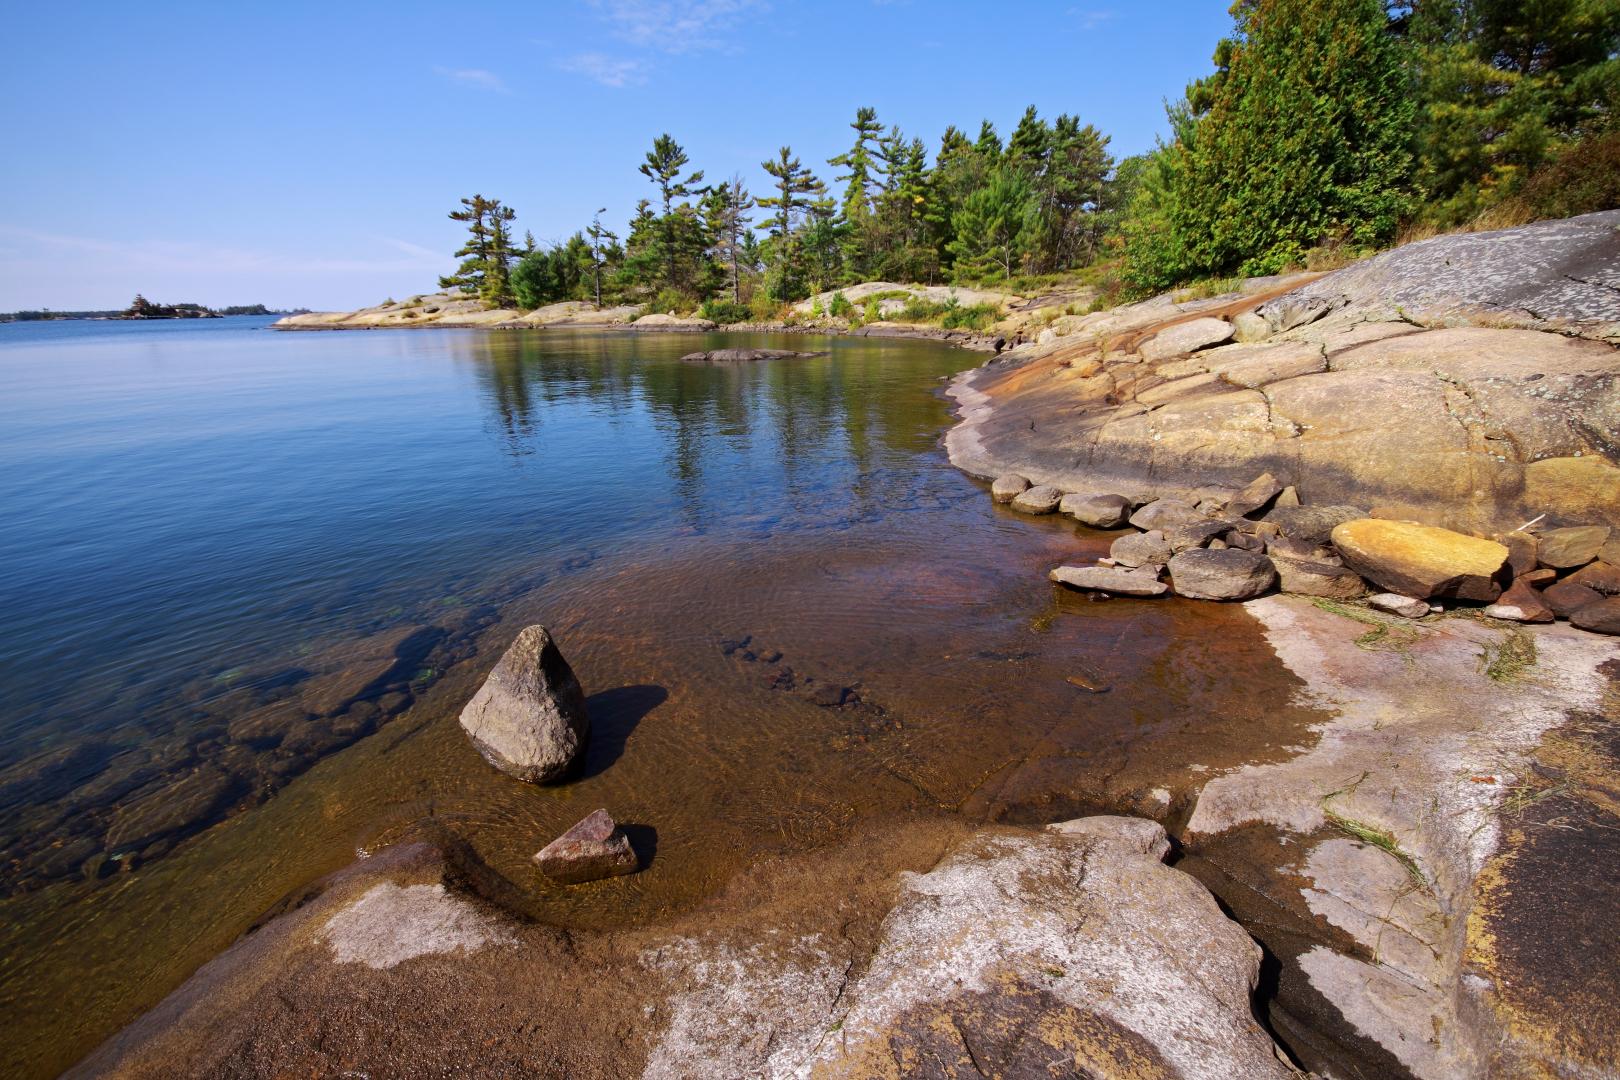 Great Lakes Governance Reform for Place-based Regeneration of the Natural and Built Environment